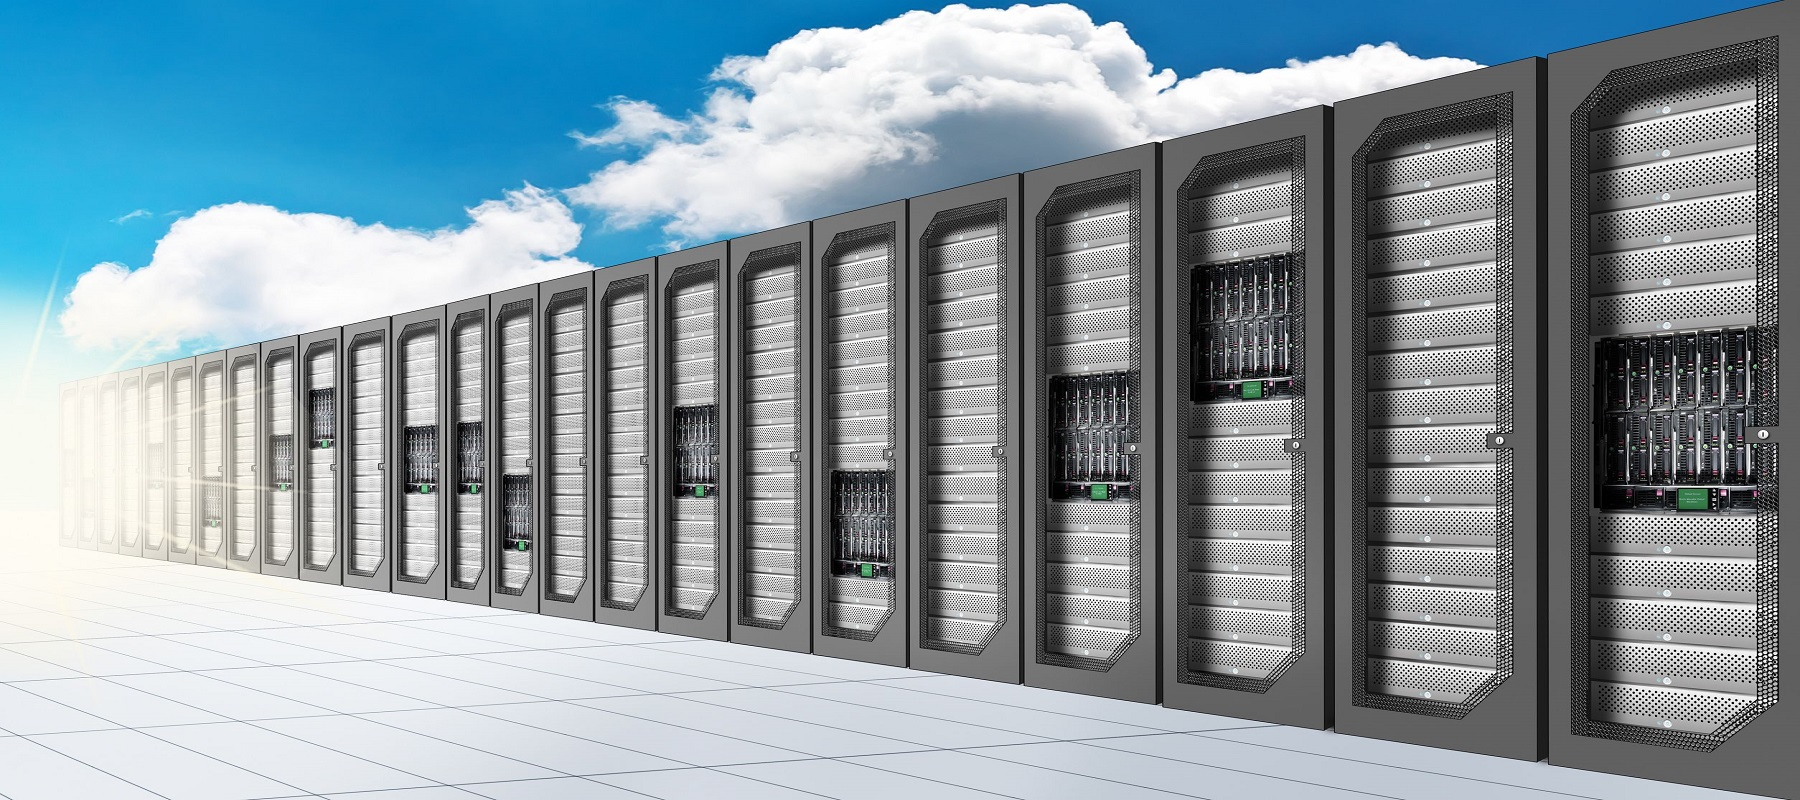 If You Are Not Careful, Technology On-Premises Can Constrain Your Organisation